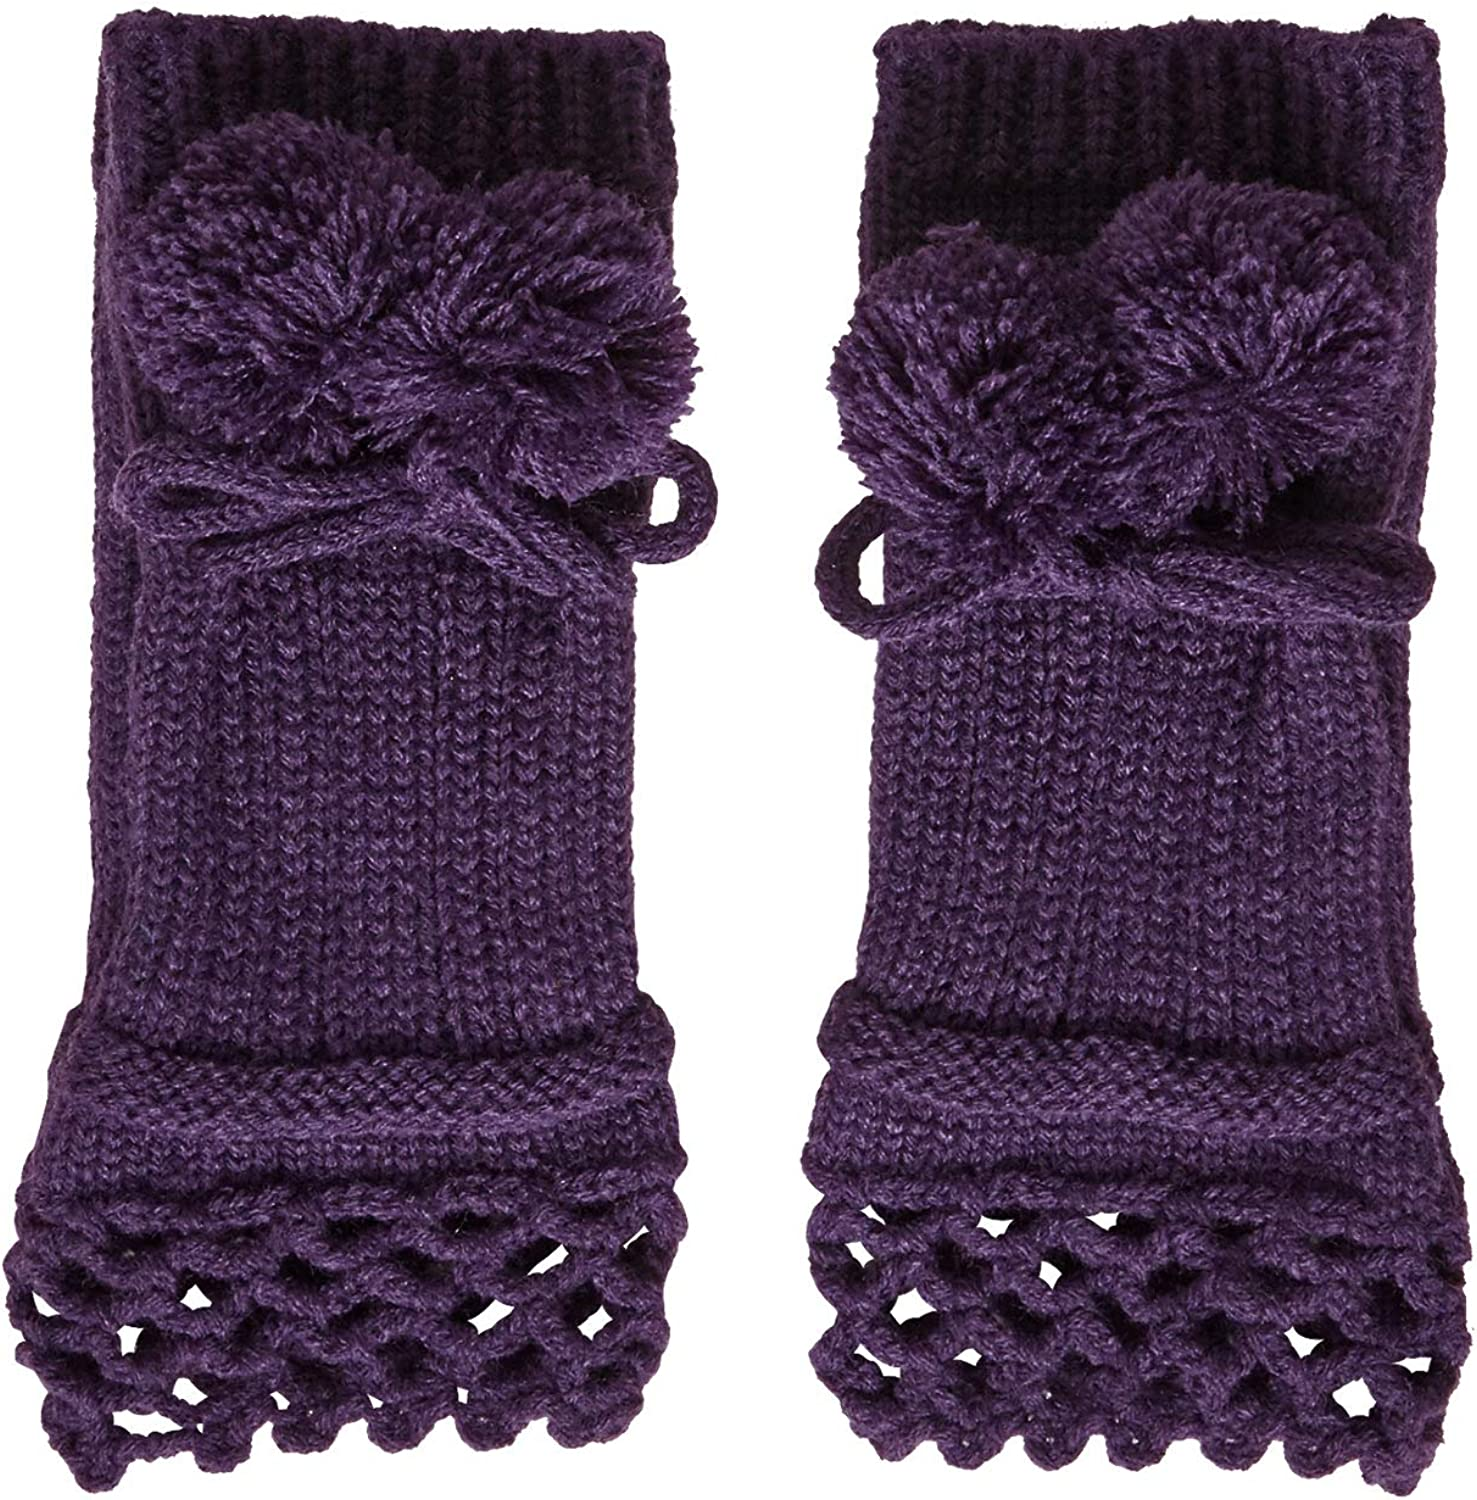 Joe Browns Quirky Knitted...